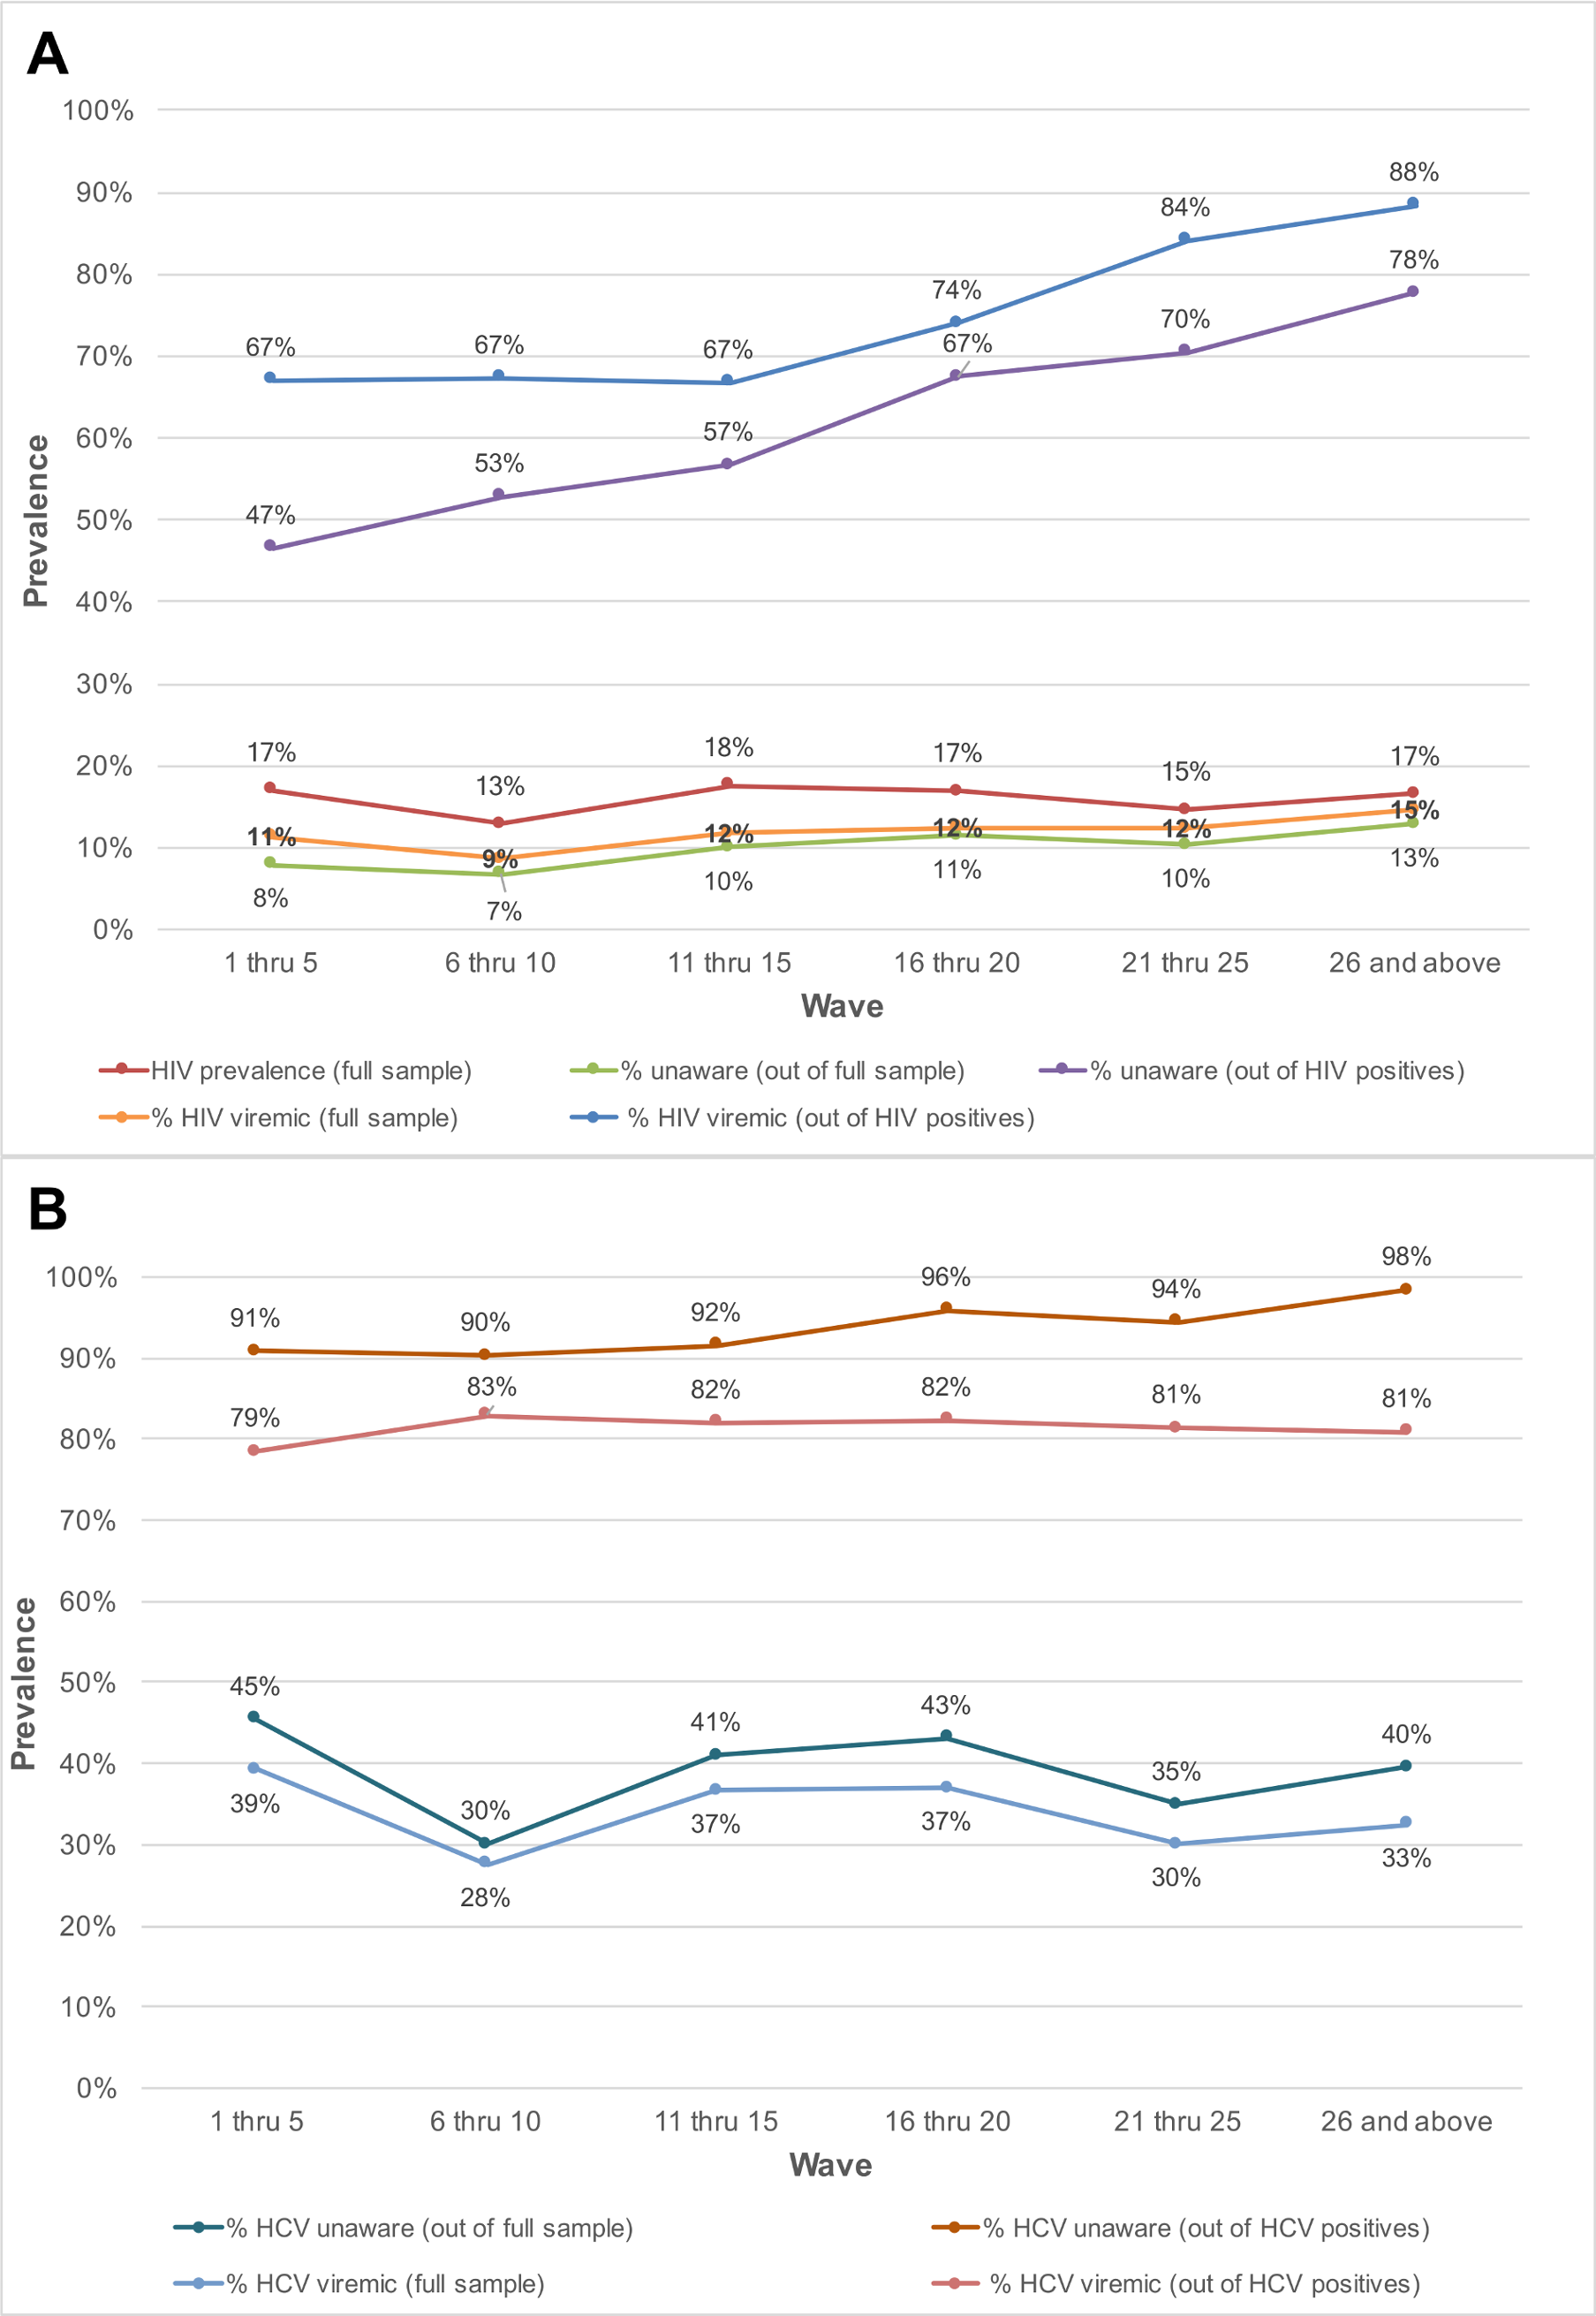 Prevalence of unaware and viremic individuals by respondent-driven sampling recruitment wave among PWID and MSM in India.